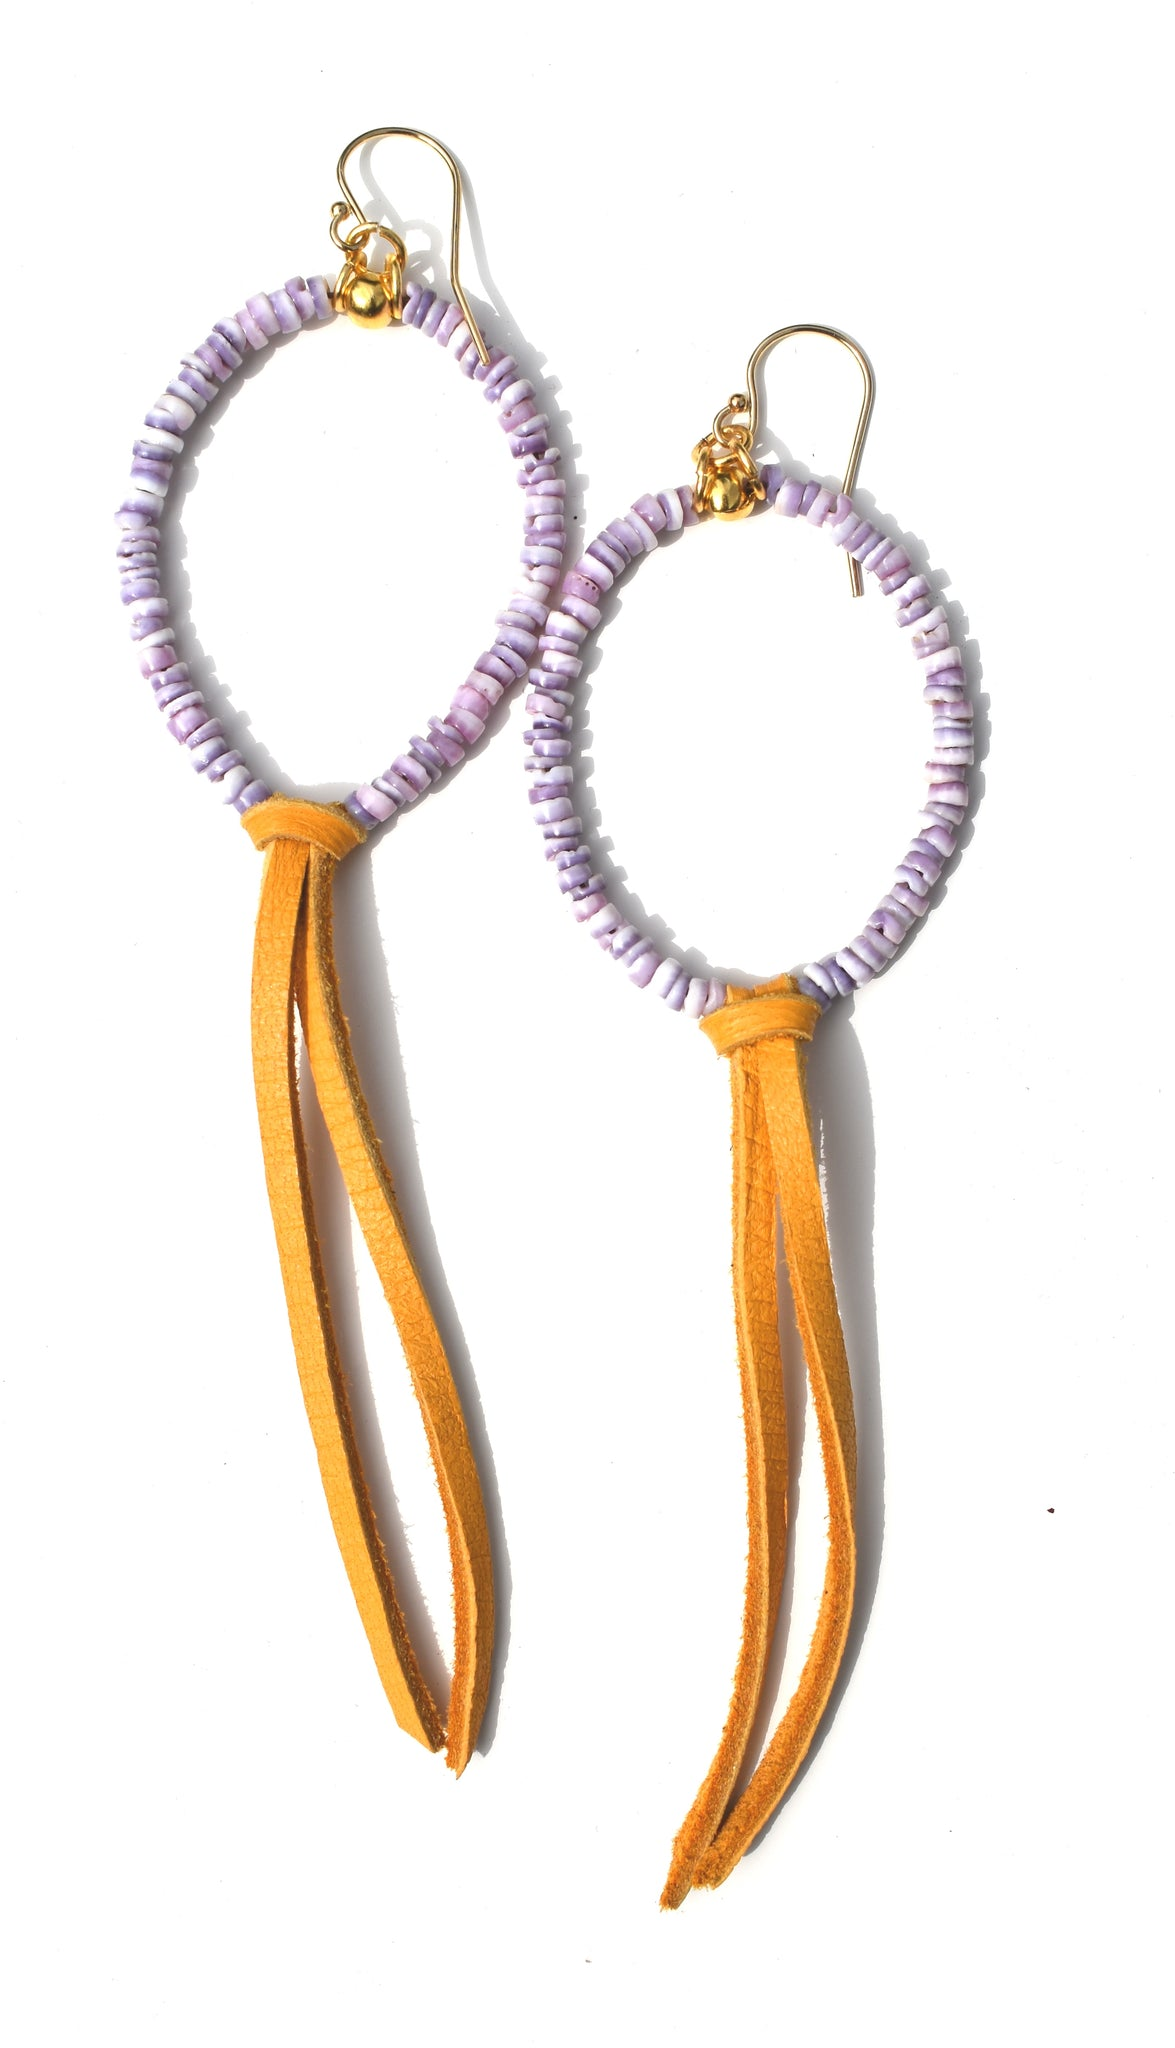 Urchin Hoop Earrings